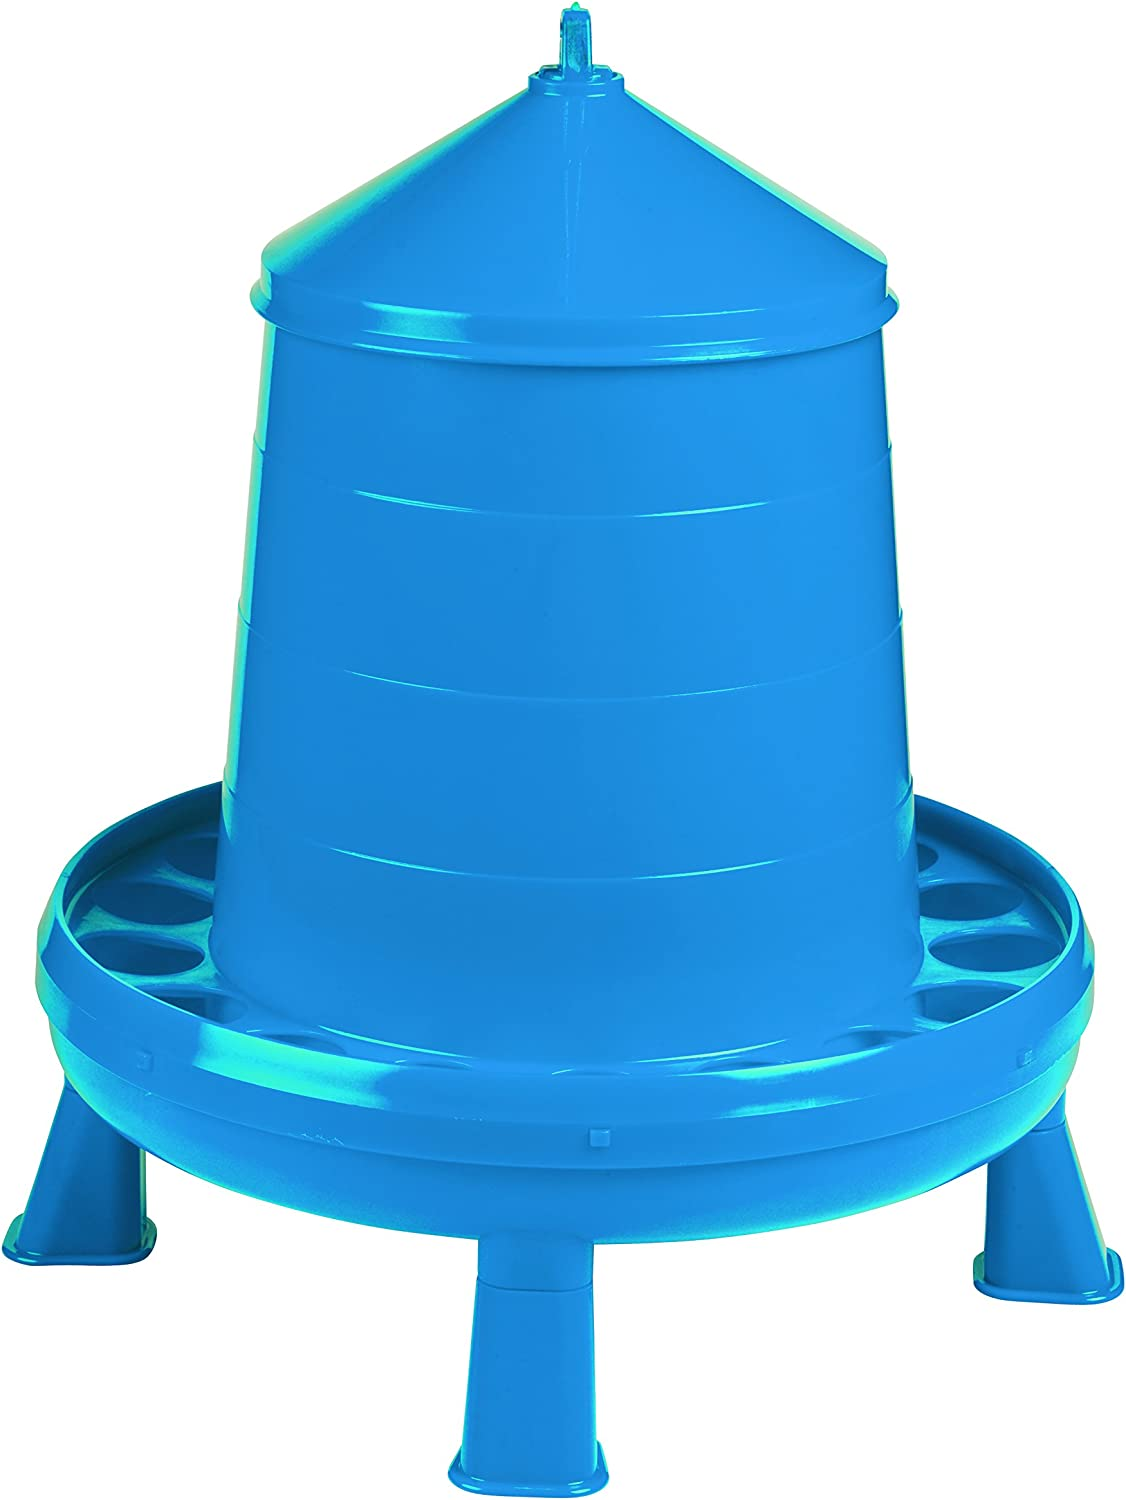 Poultry Feeder with Legs Blue shipfree - OFFicial shop Container Feeding Durable